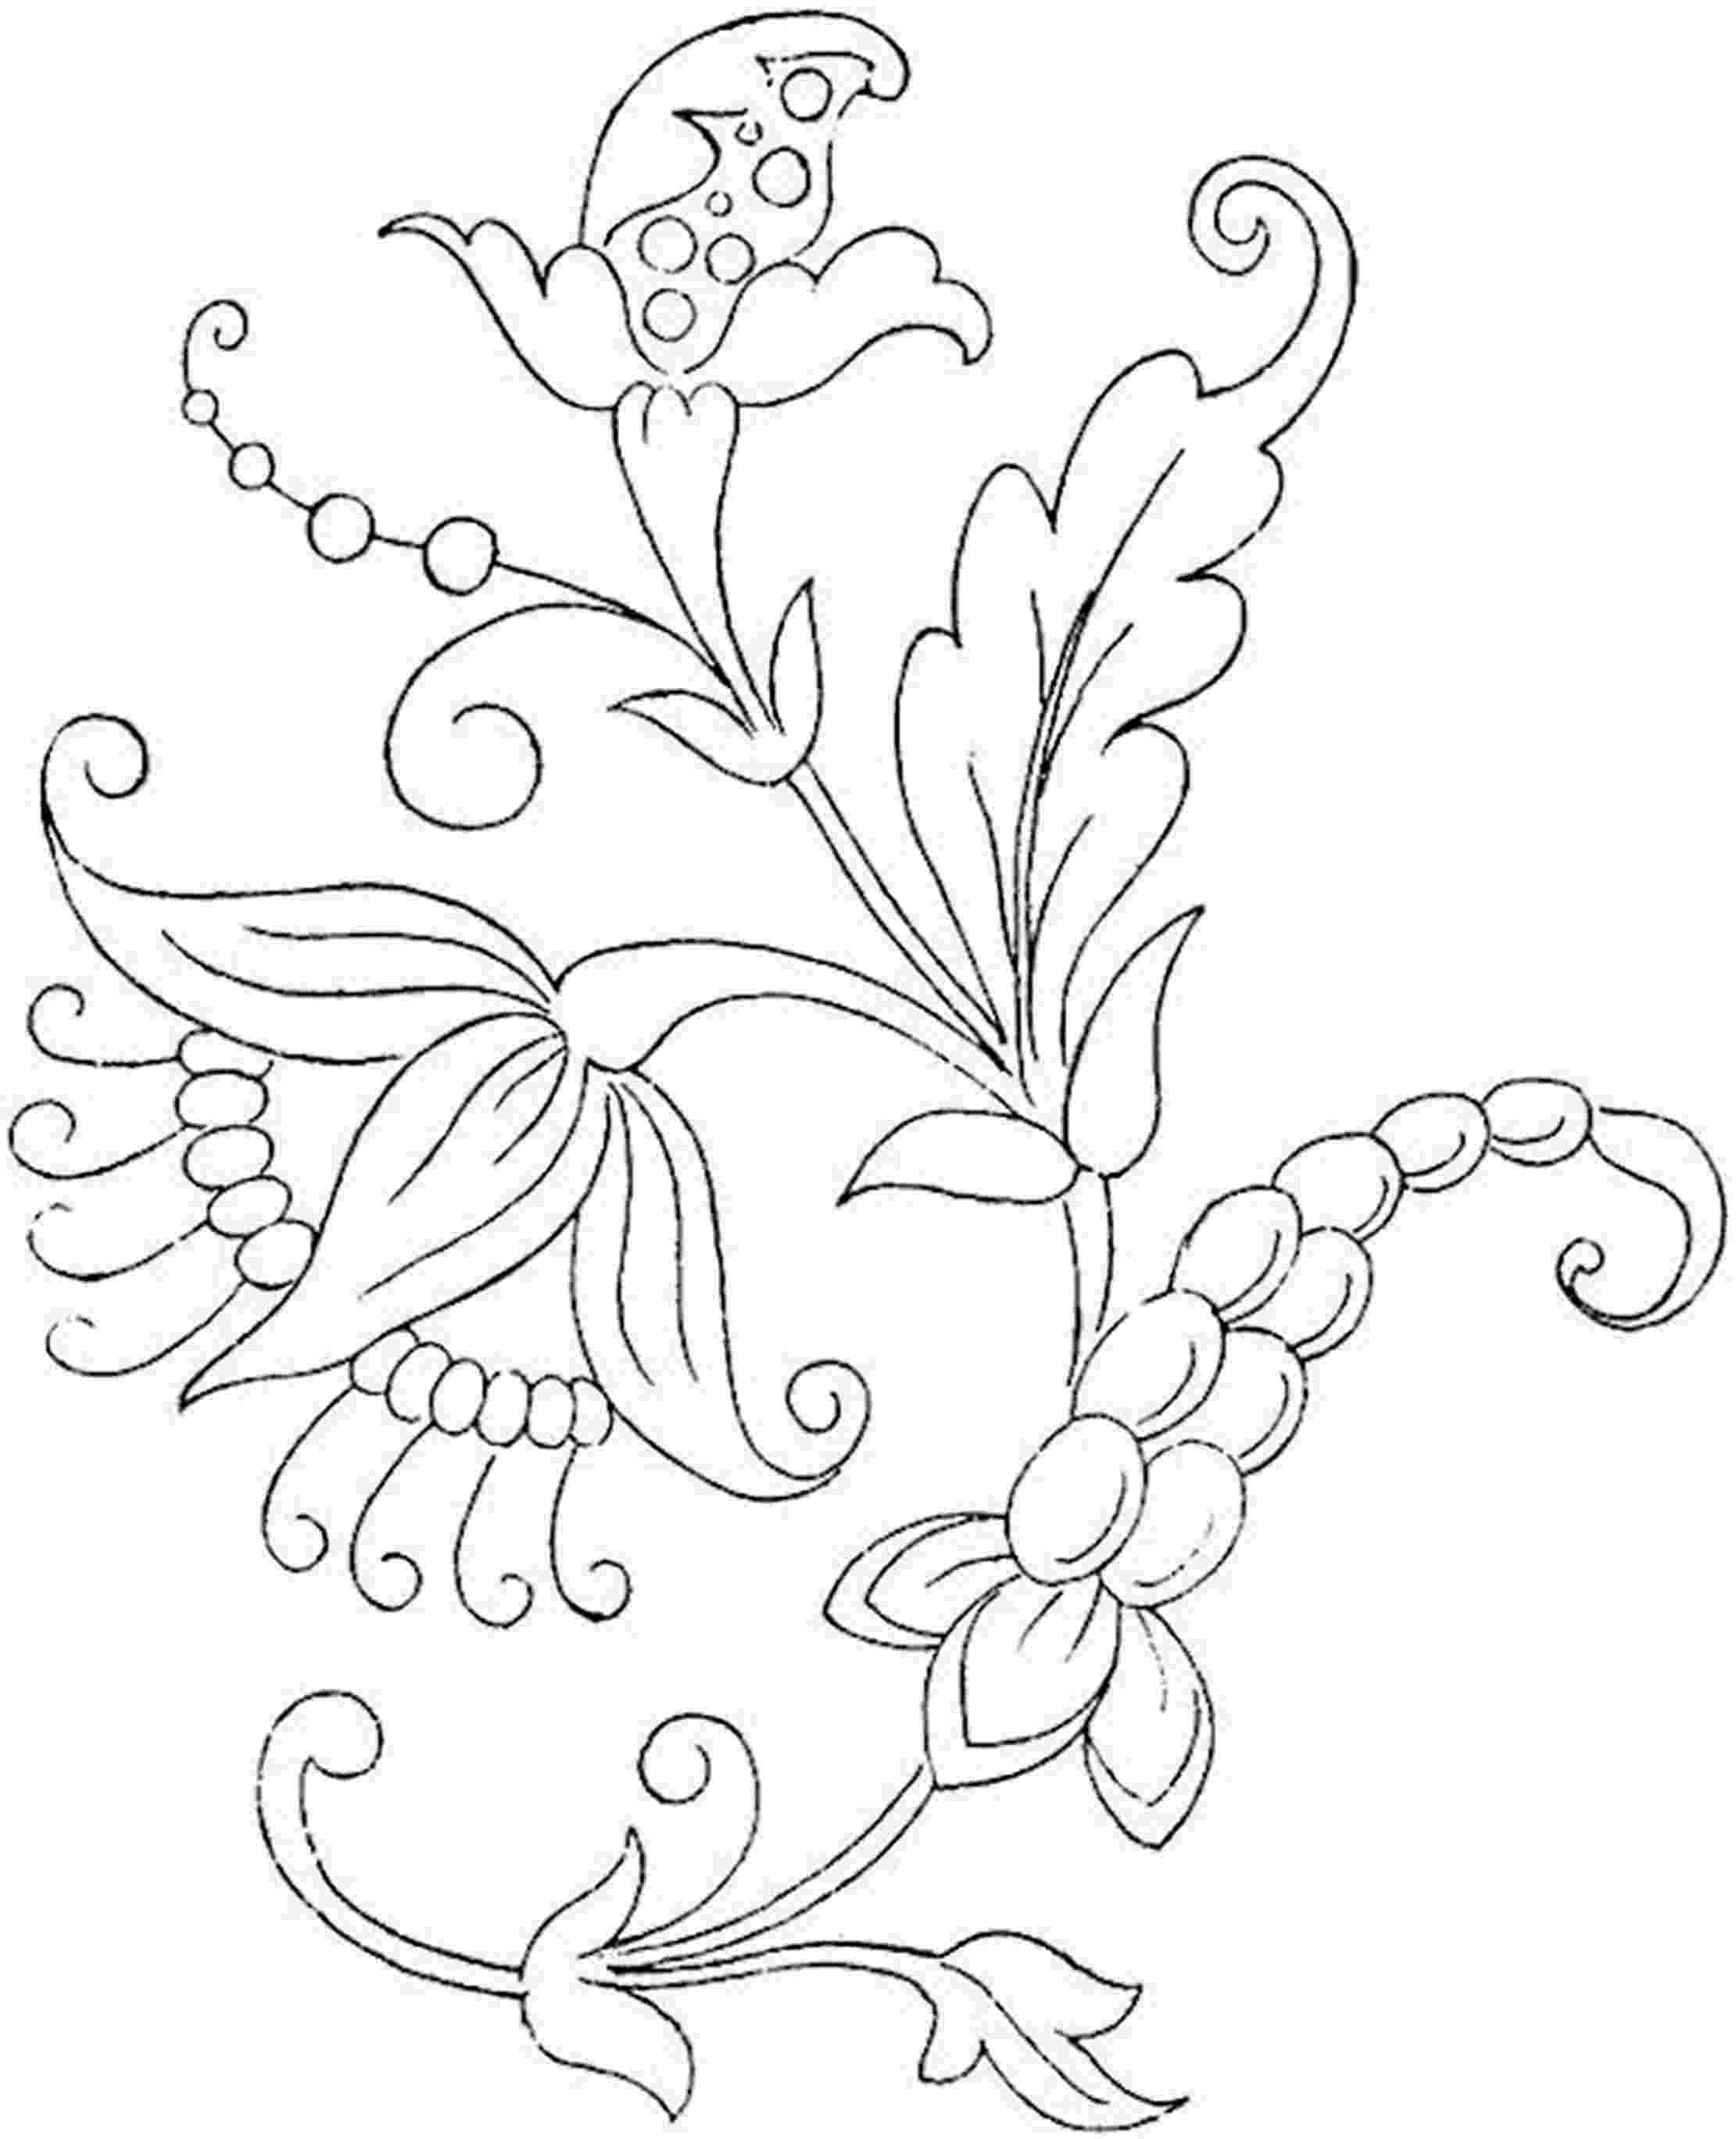 picture of flower for colouring kids coloring pages flowers coloring pages picture colouring for flower of